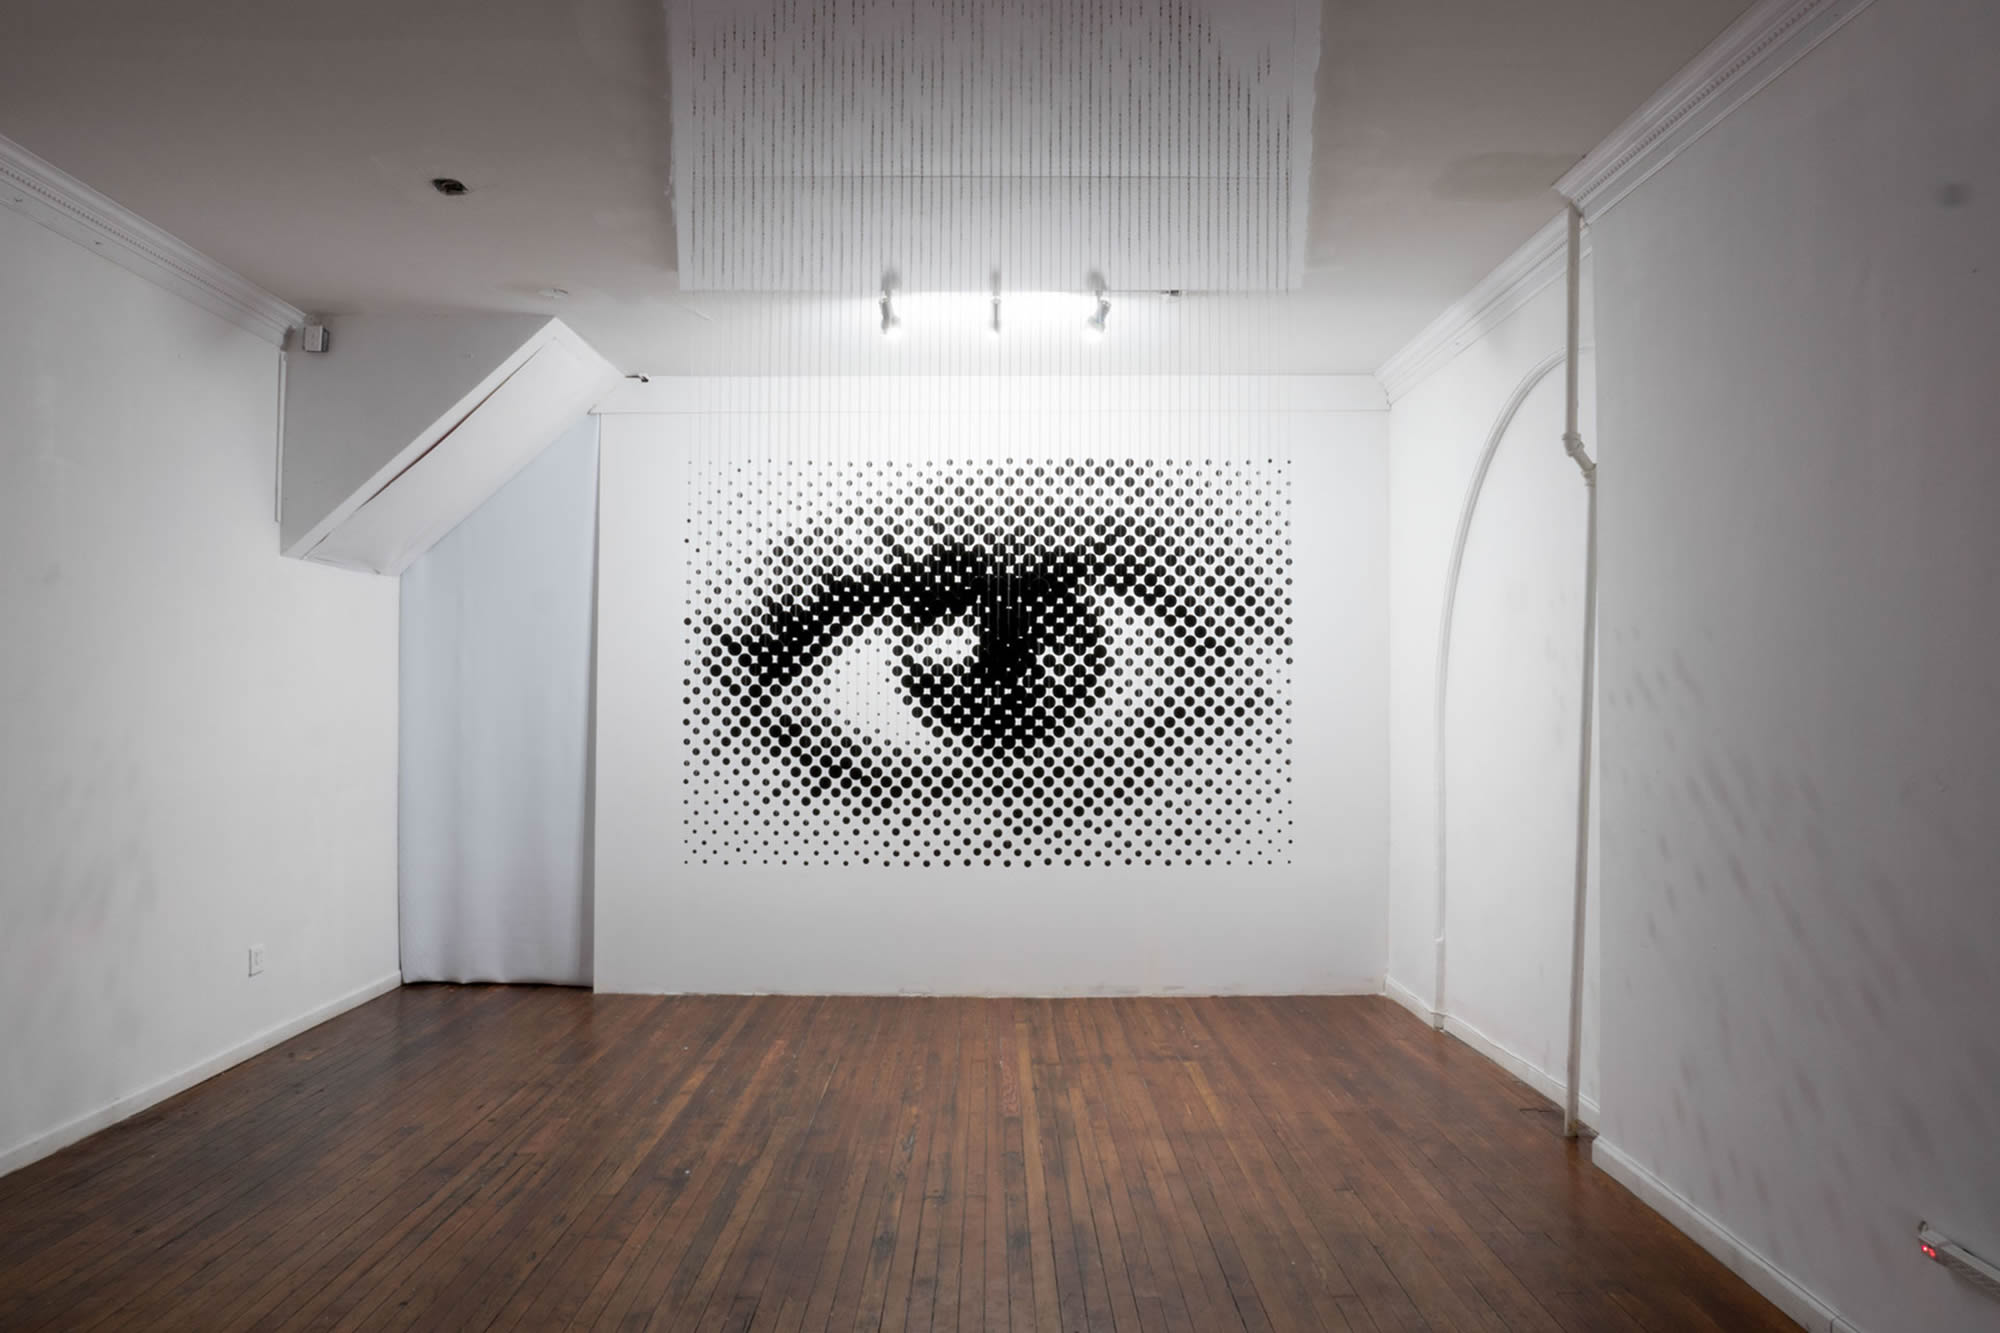 An Eye for An Eye: The Perspective Illusions of Michael Murphy